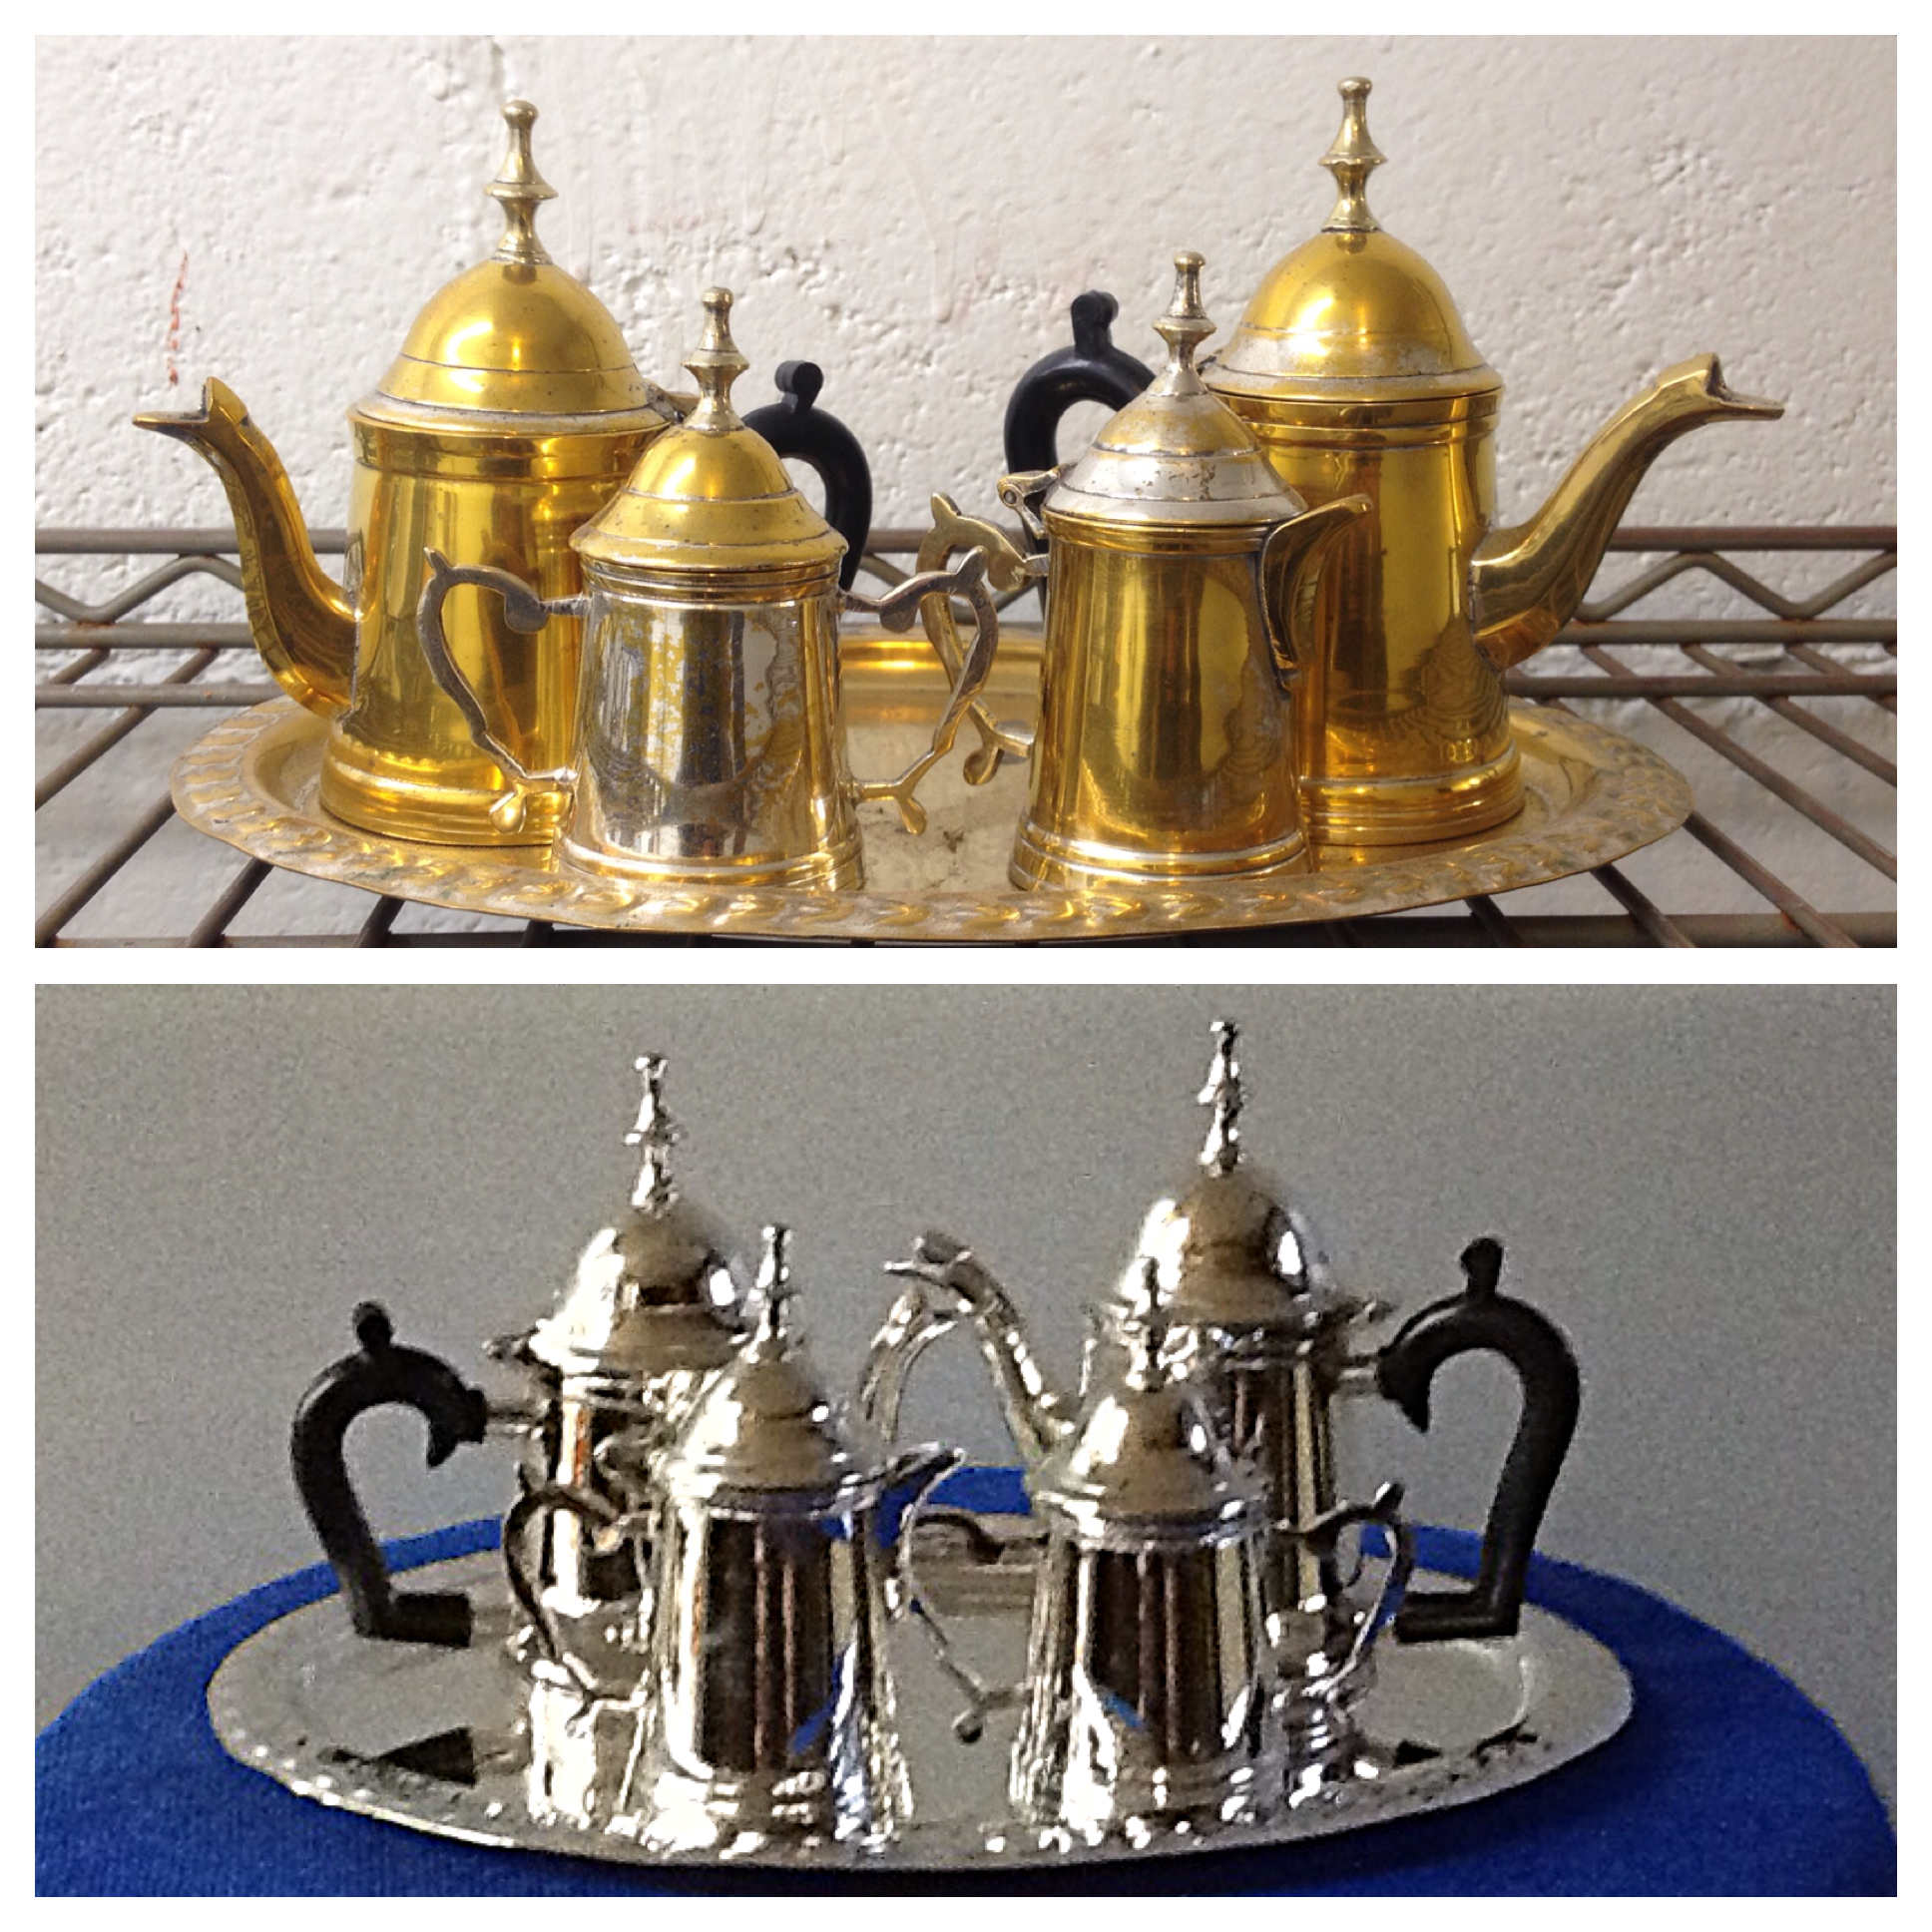 Before/after tea service set